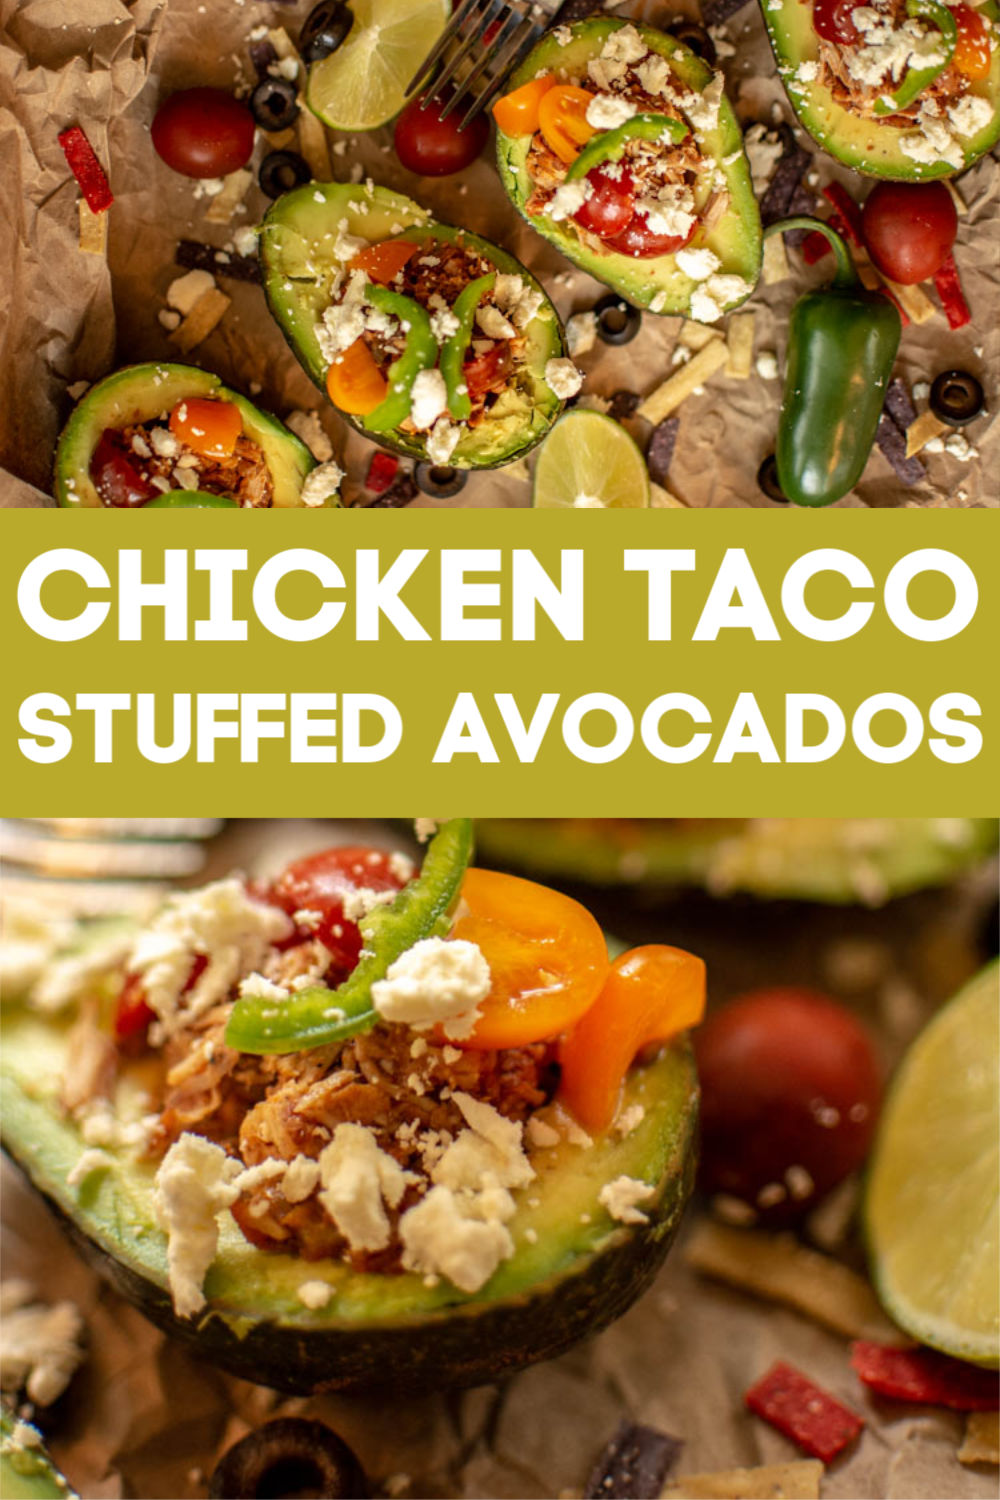 Super Easy and Healthy Chicken Taco Stuffed Avocados. This is easy for portion control and tastes phenomenal! So darned good! #taco #avocado #StuffedAvocados #Chicken #Mexican